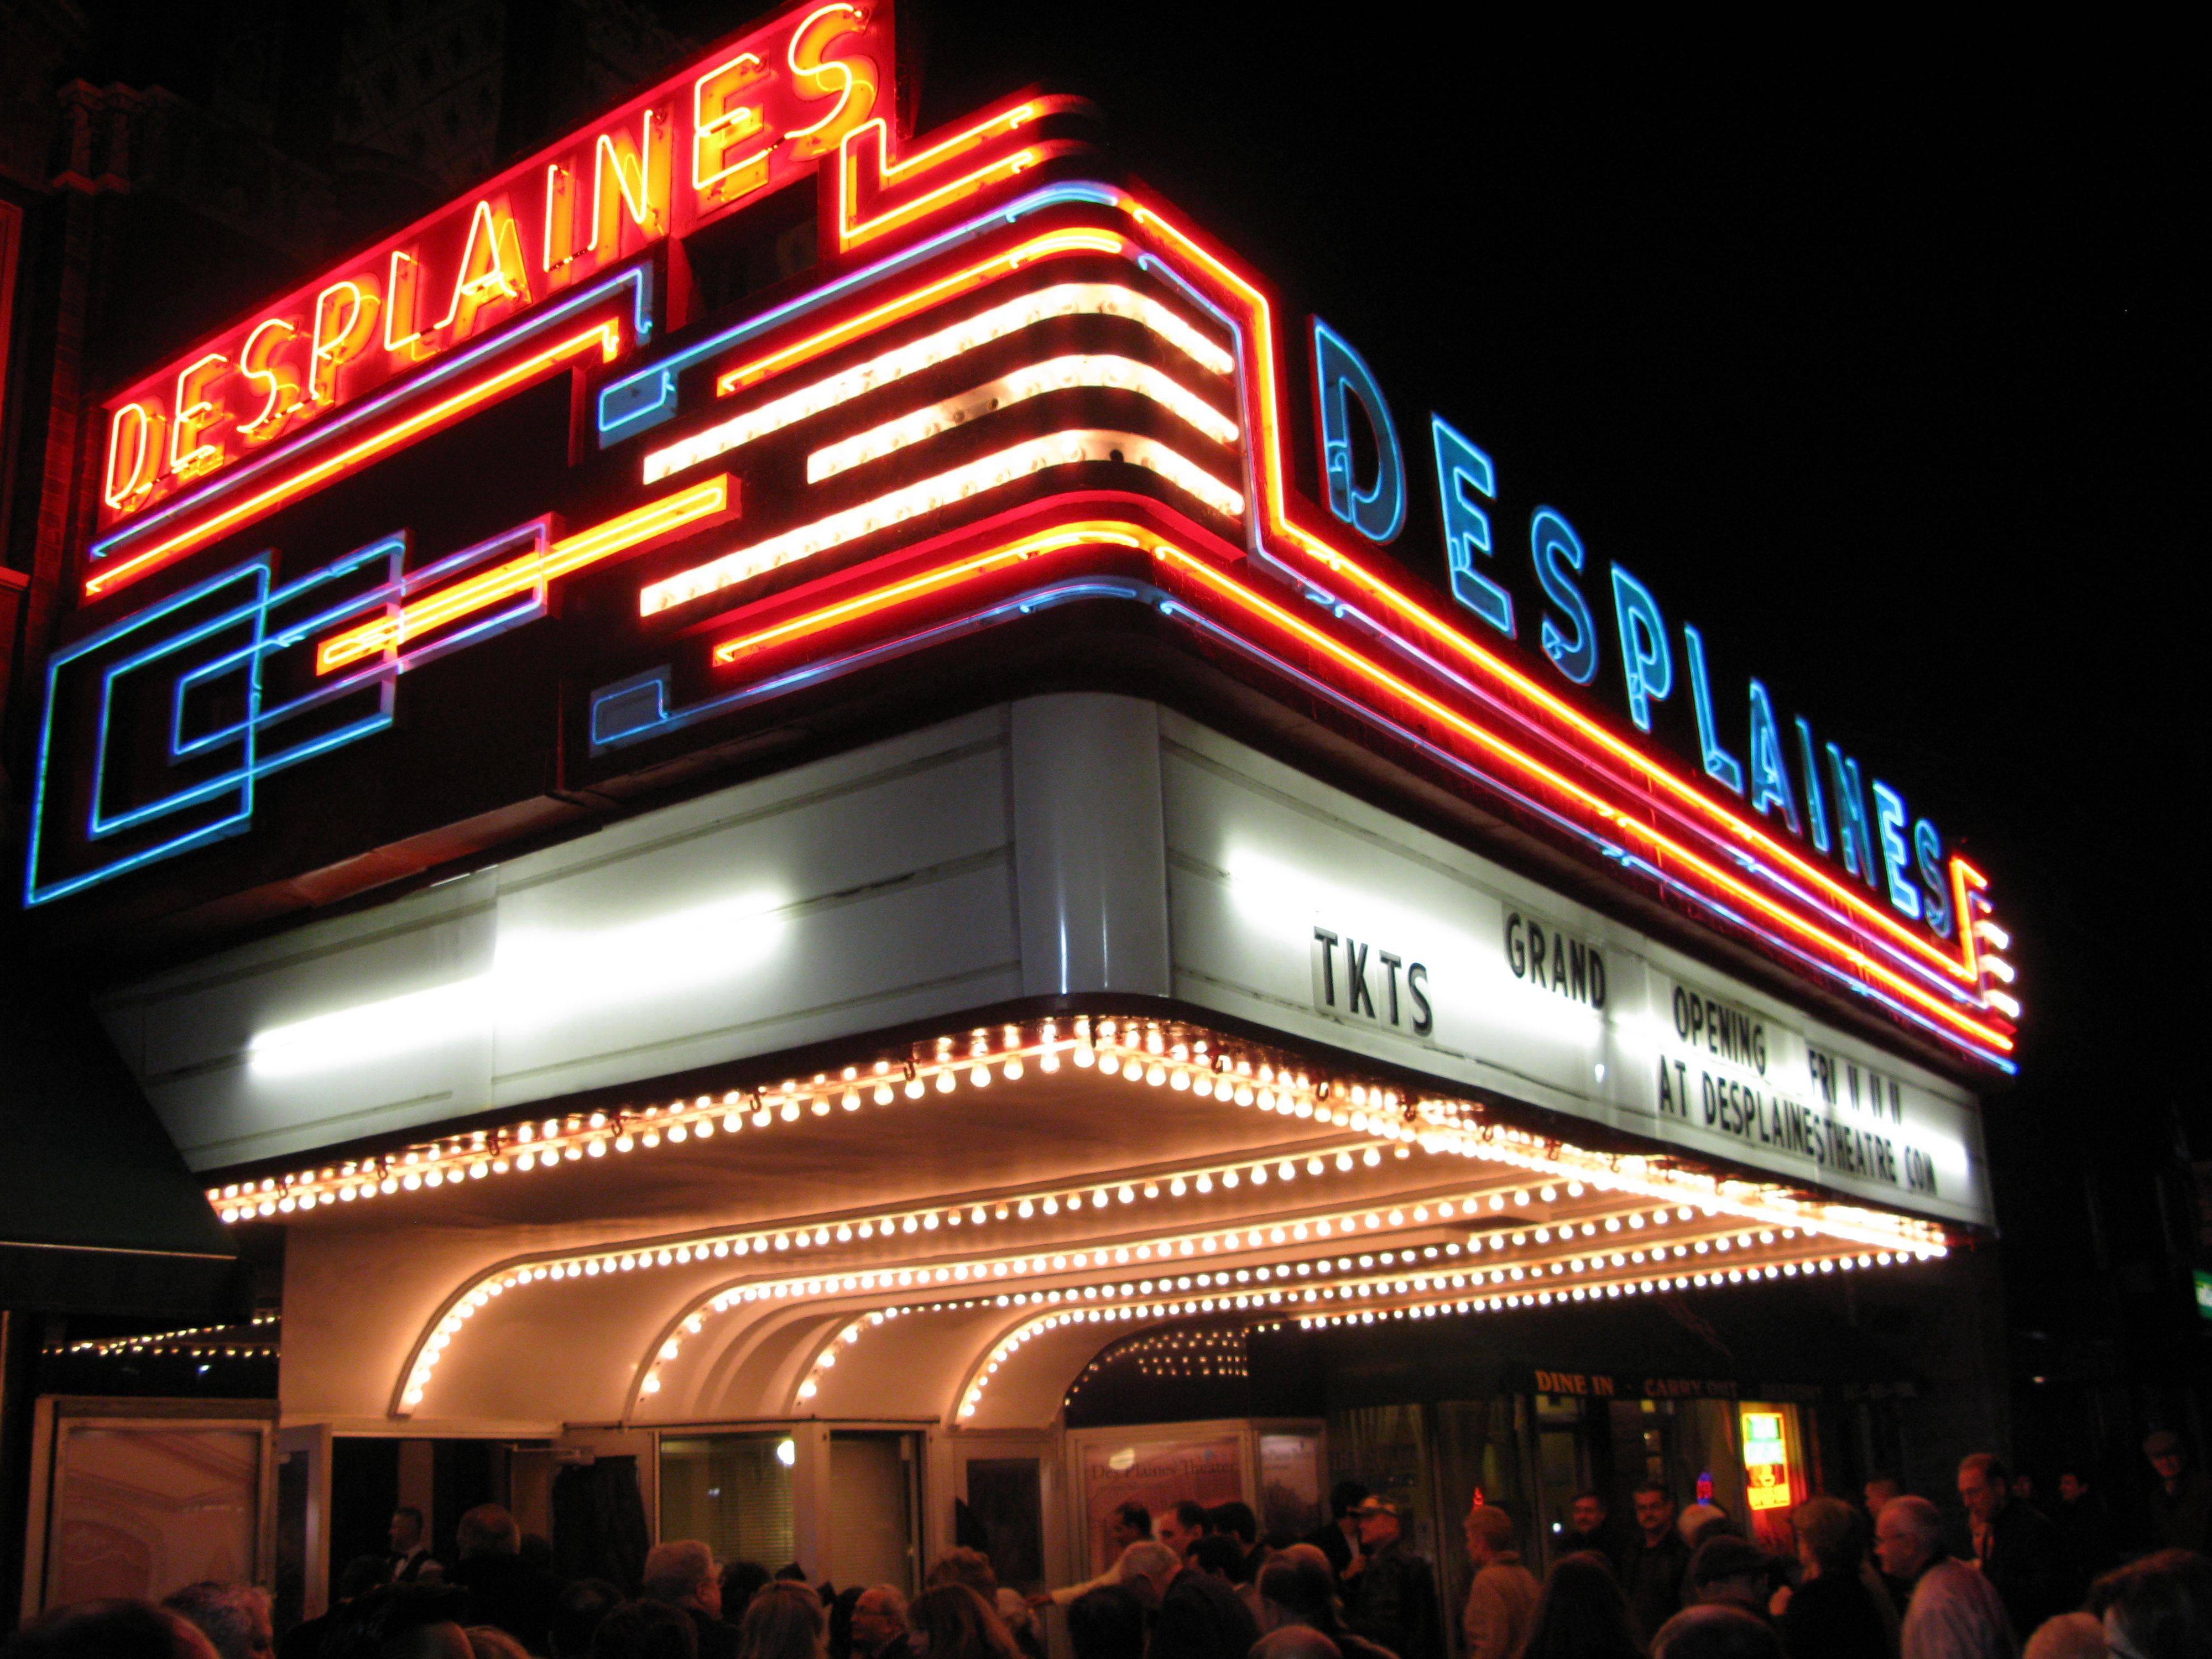 Des Plaines Theatre reopens after two years of work